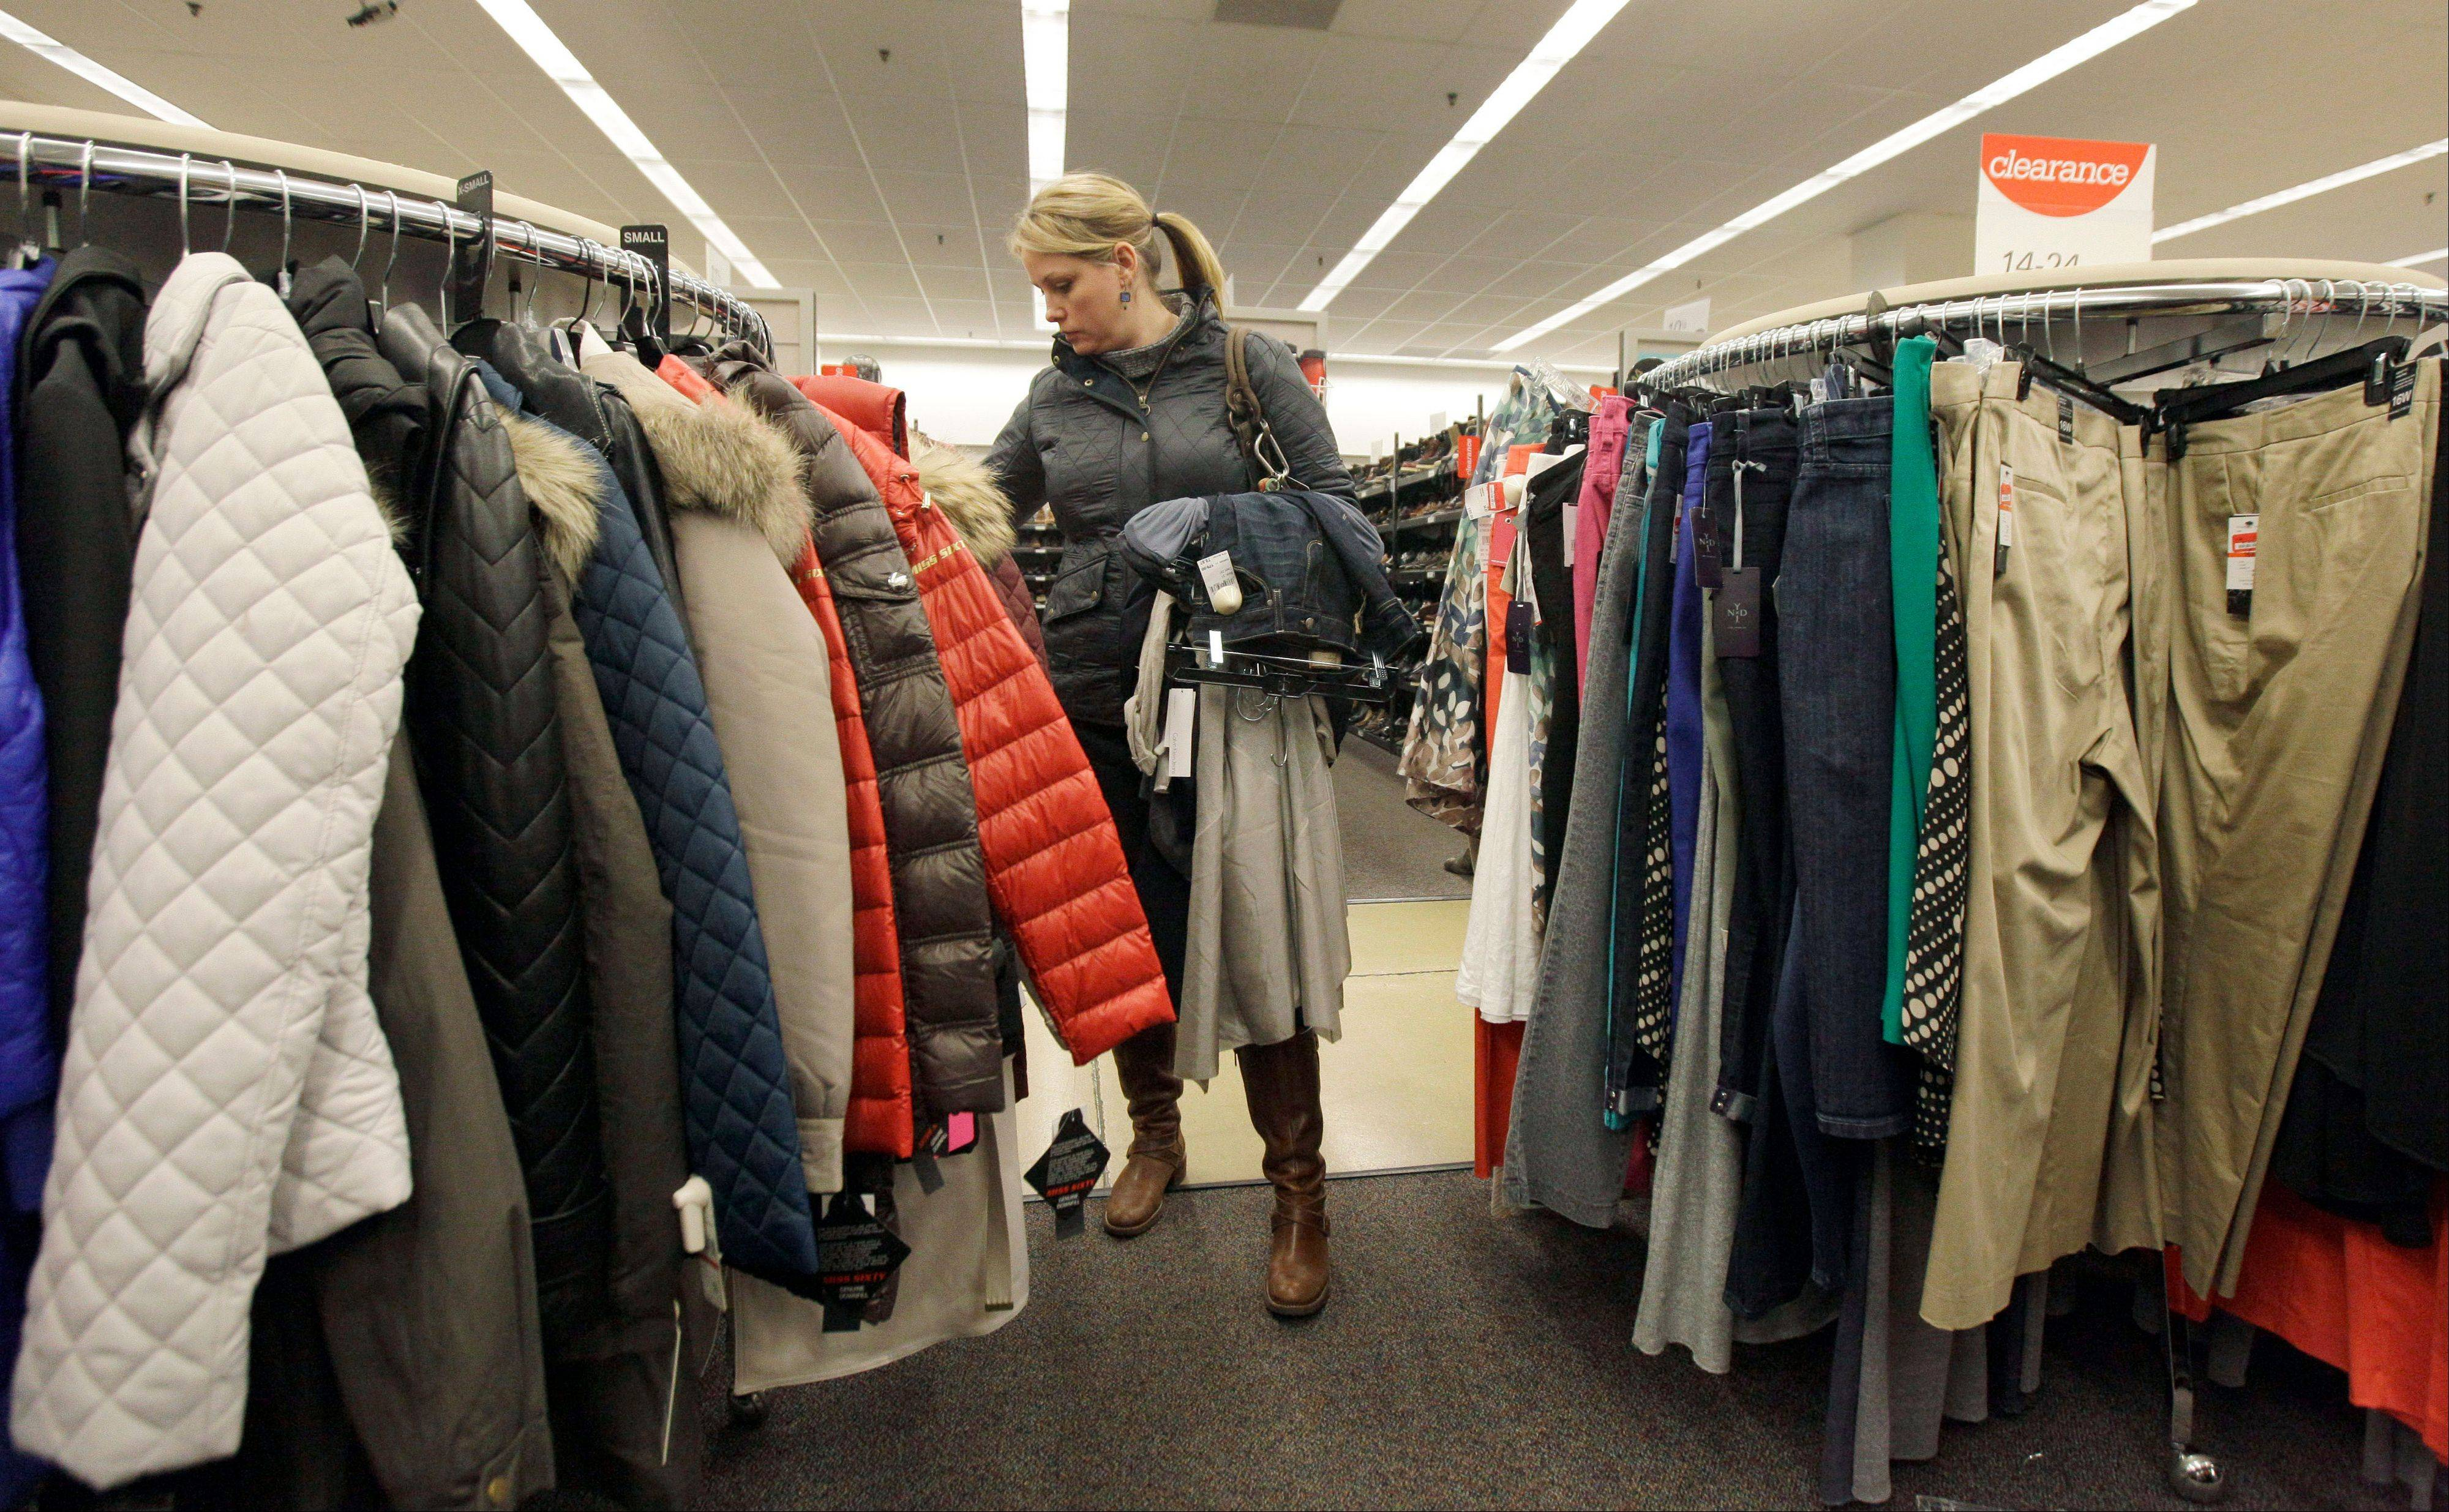 Associated Press/Nov. 1, 2012 A shopper checks winter jackets in a Nordstrom rack in Chicago.